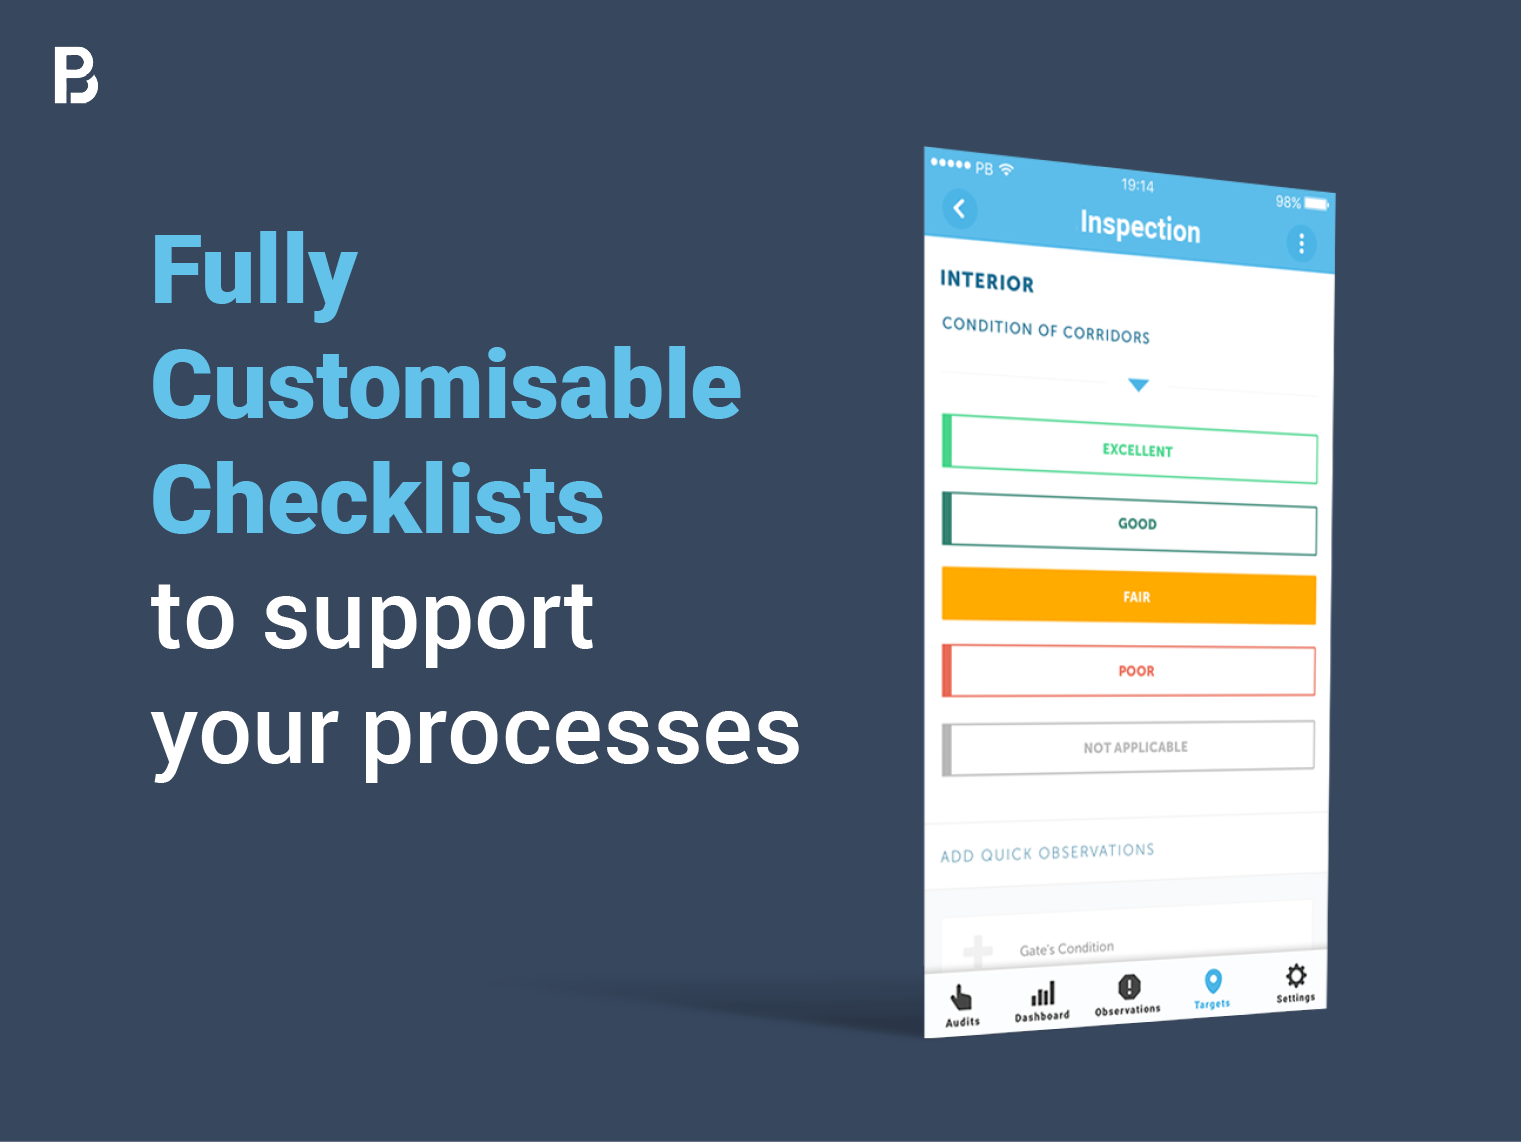 Ditch printouts and heavy Excel spreadsheets. Use our existing templates or import your own checklists into the system to immediately start cutting time from your audits and inspections.